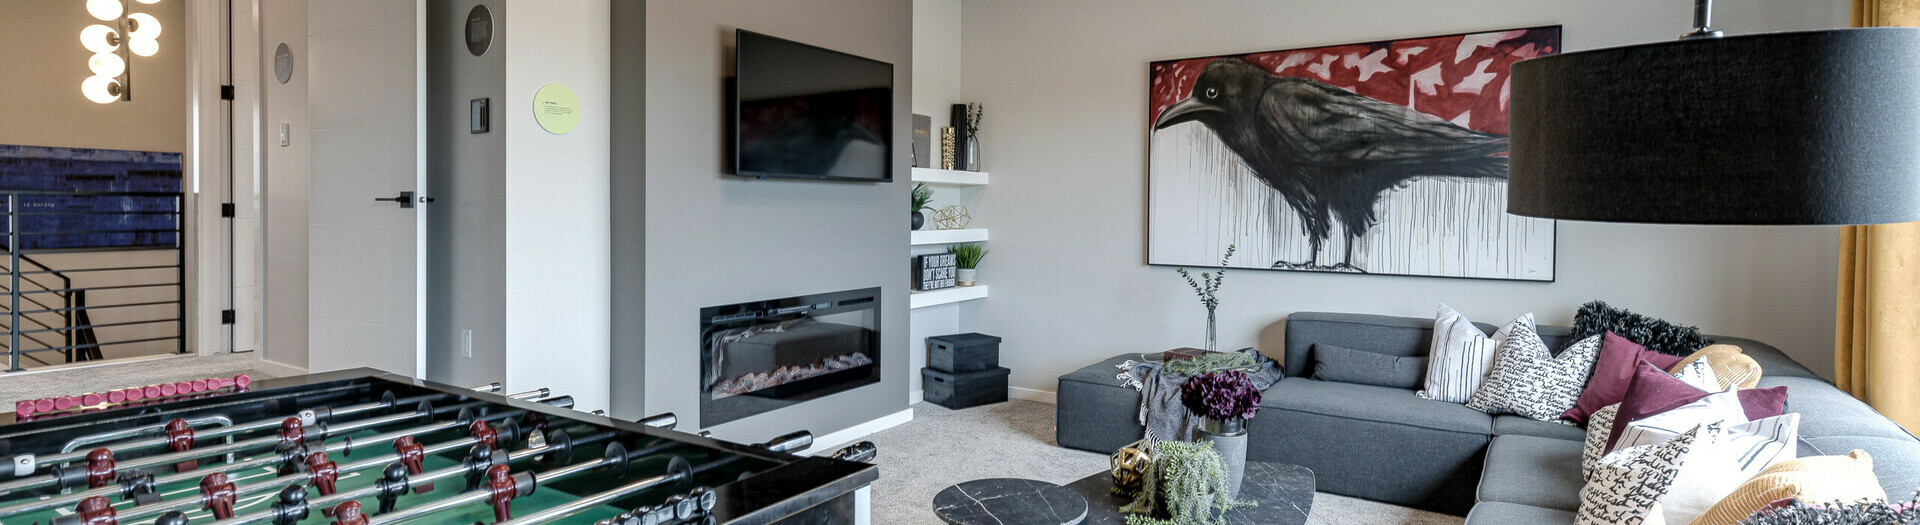 Bonus room in the Catalina showhome in the community of Kinglet by Big Lake in Edmonton, Alberta.